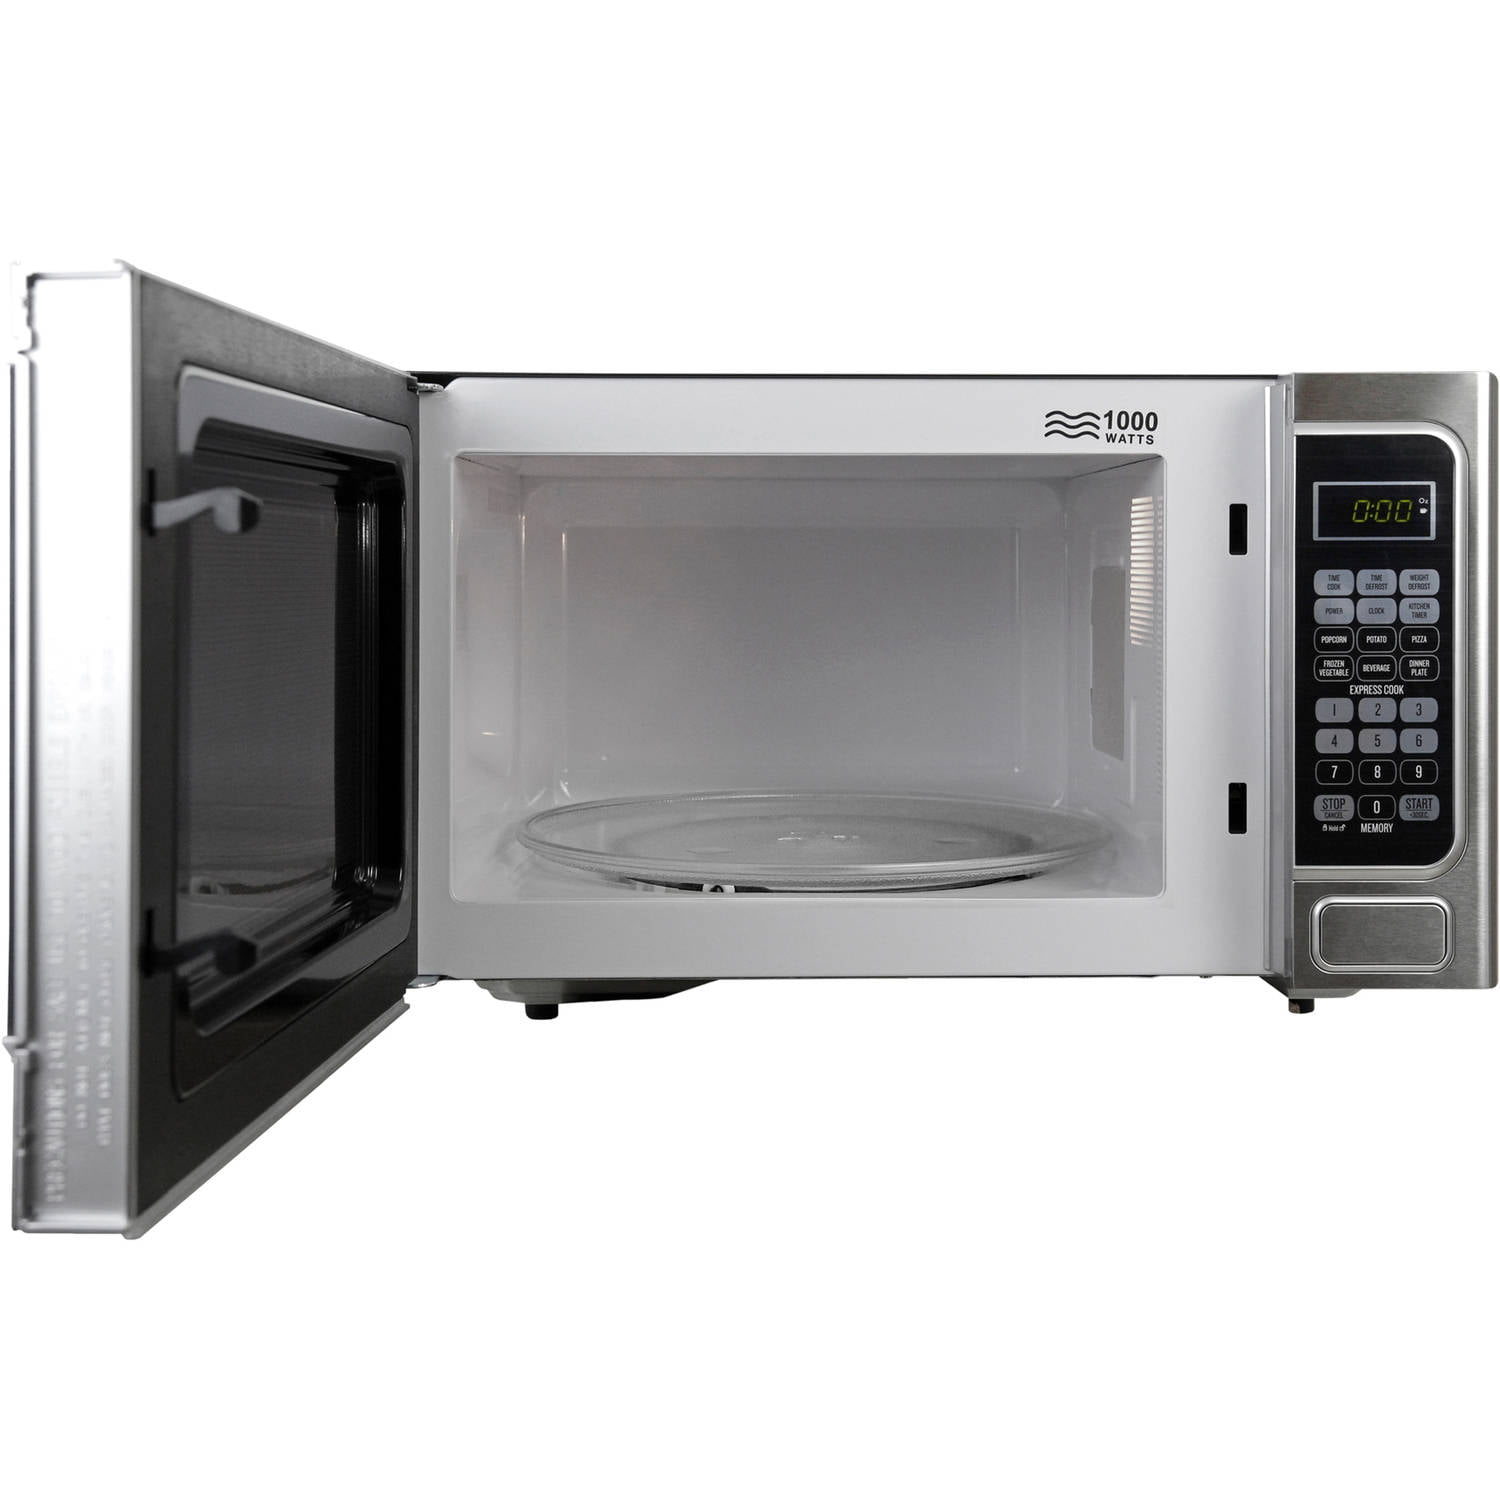 See More Hot 100 Microwaves Related Products